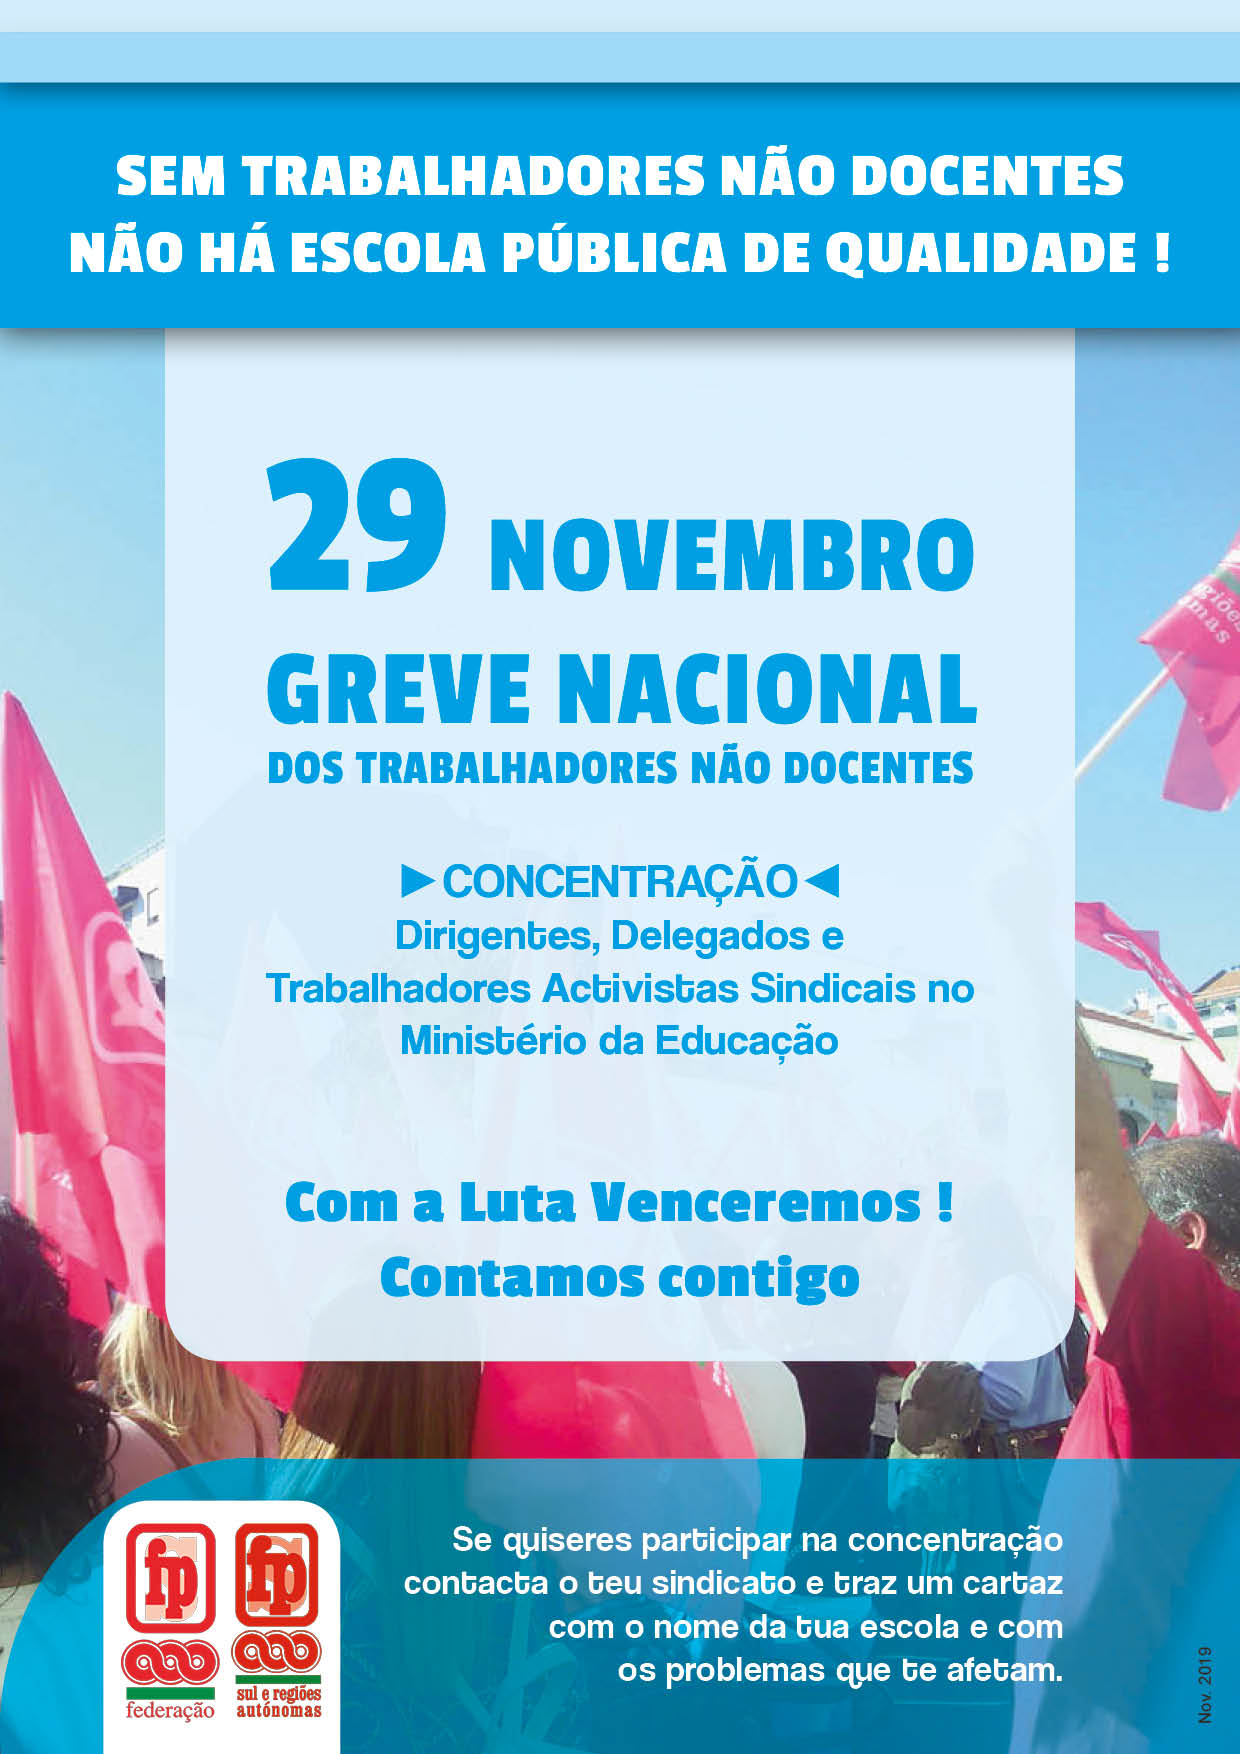 comunicado 29Nov NaoDocentesRedePublica